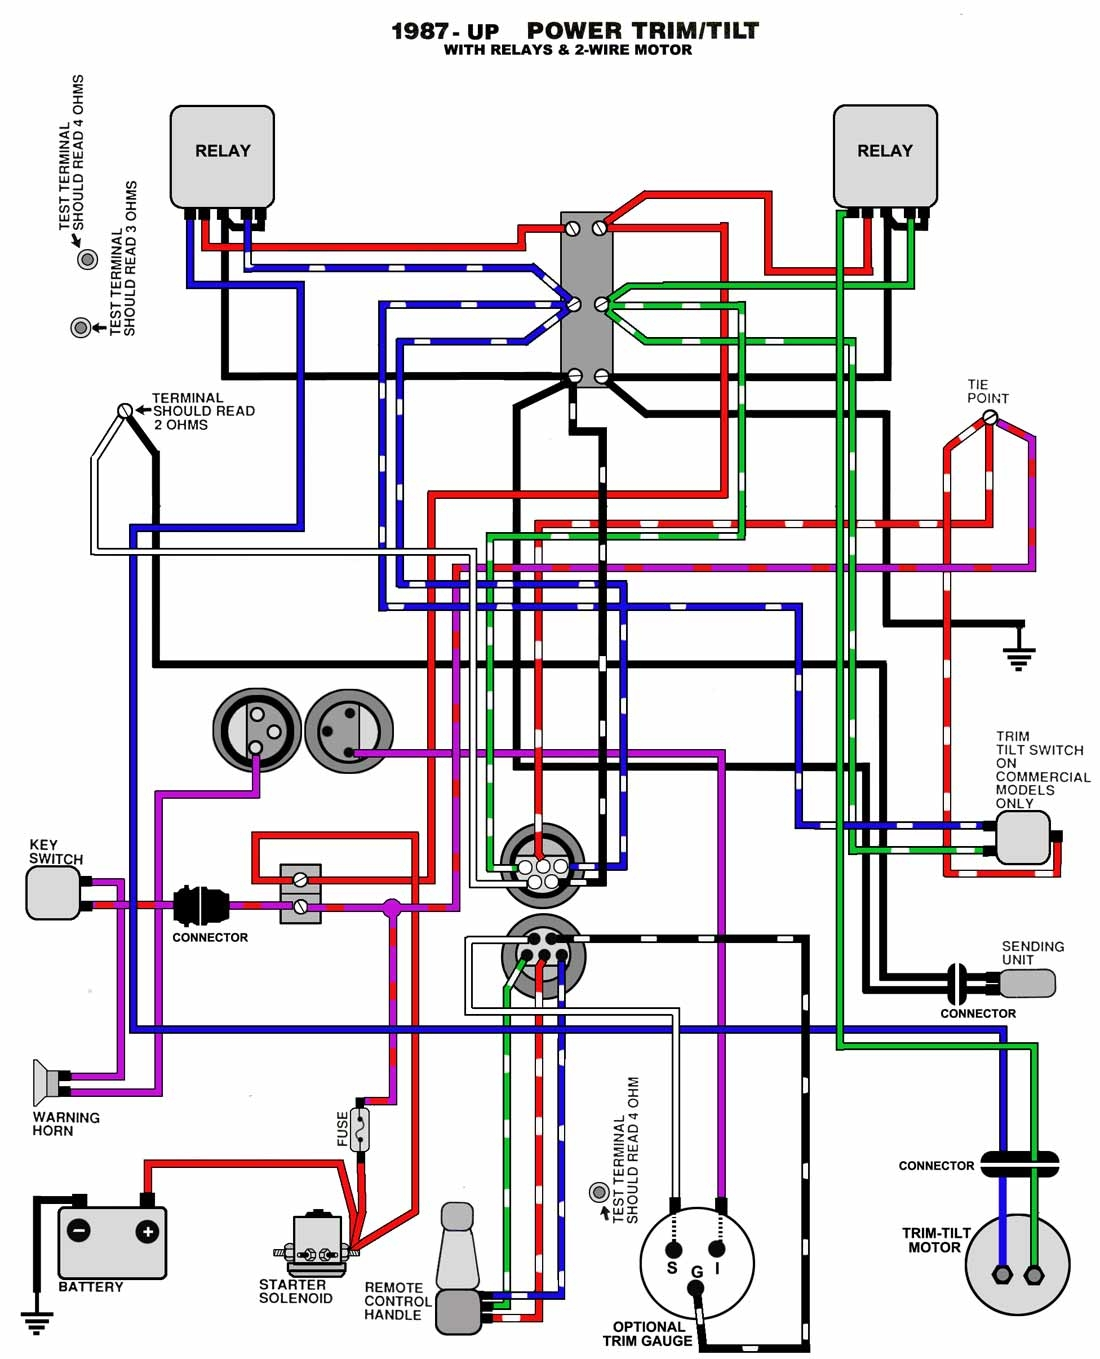 johnson outboard ignition switch wiring diagram | free wiring diagram 1997 mustang ignition wiring diagram free download jacobs ignition system wiring diagram free download #14